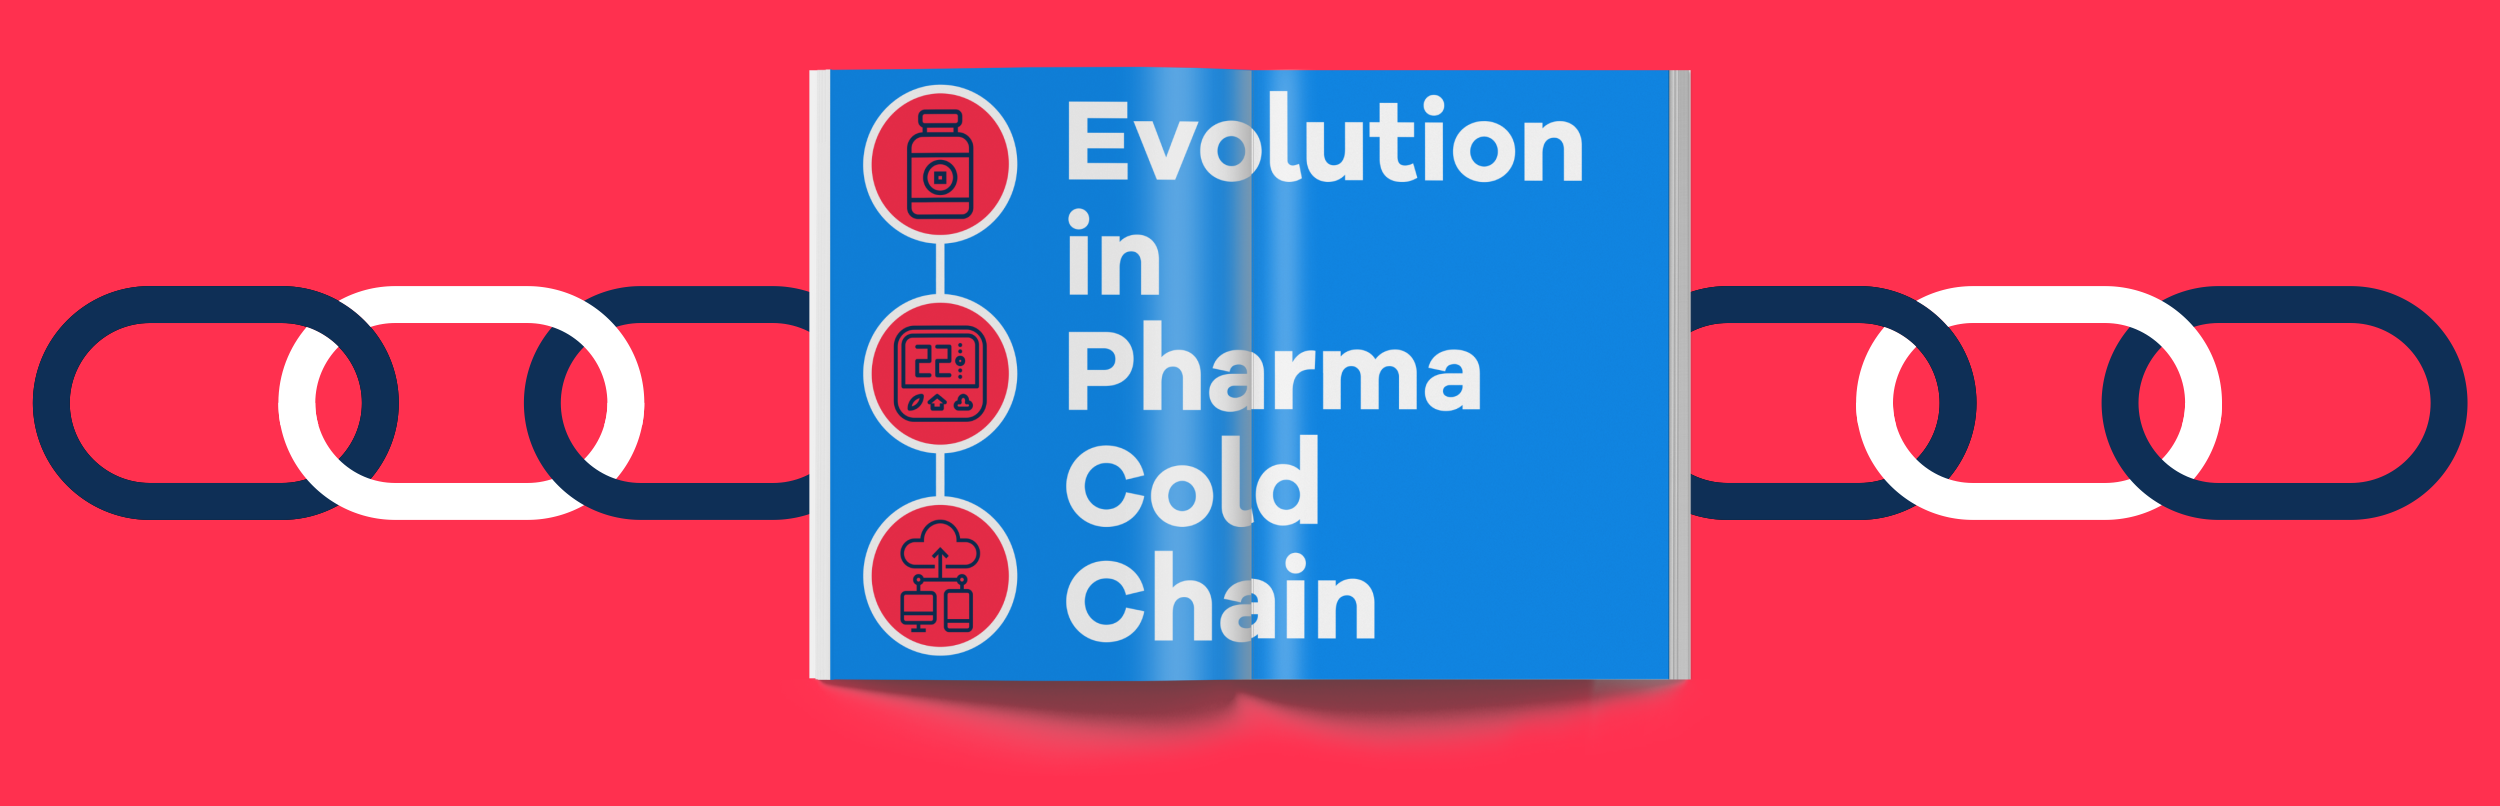 Evolution in Pharma Cold Chain — Vaccine Vial Monitors to Dataloggers to IoT